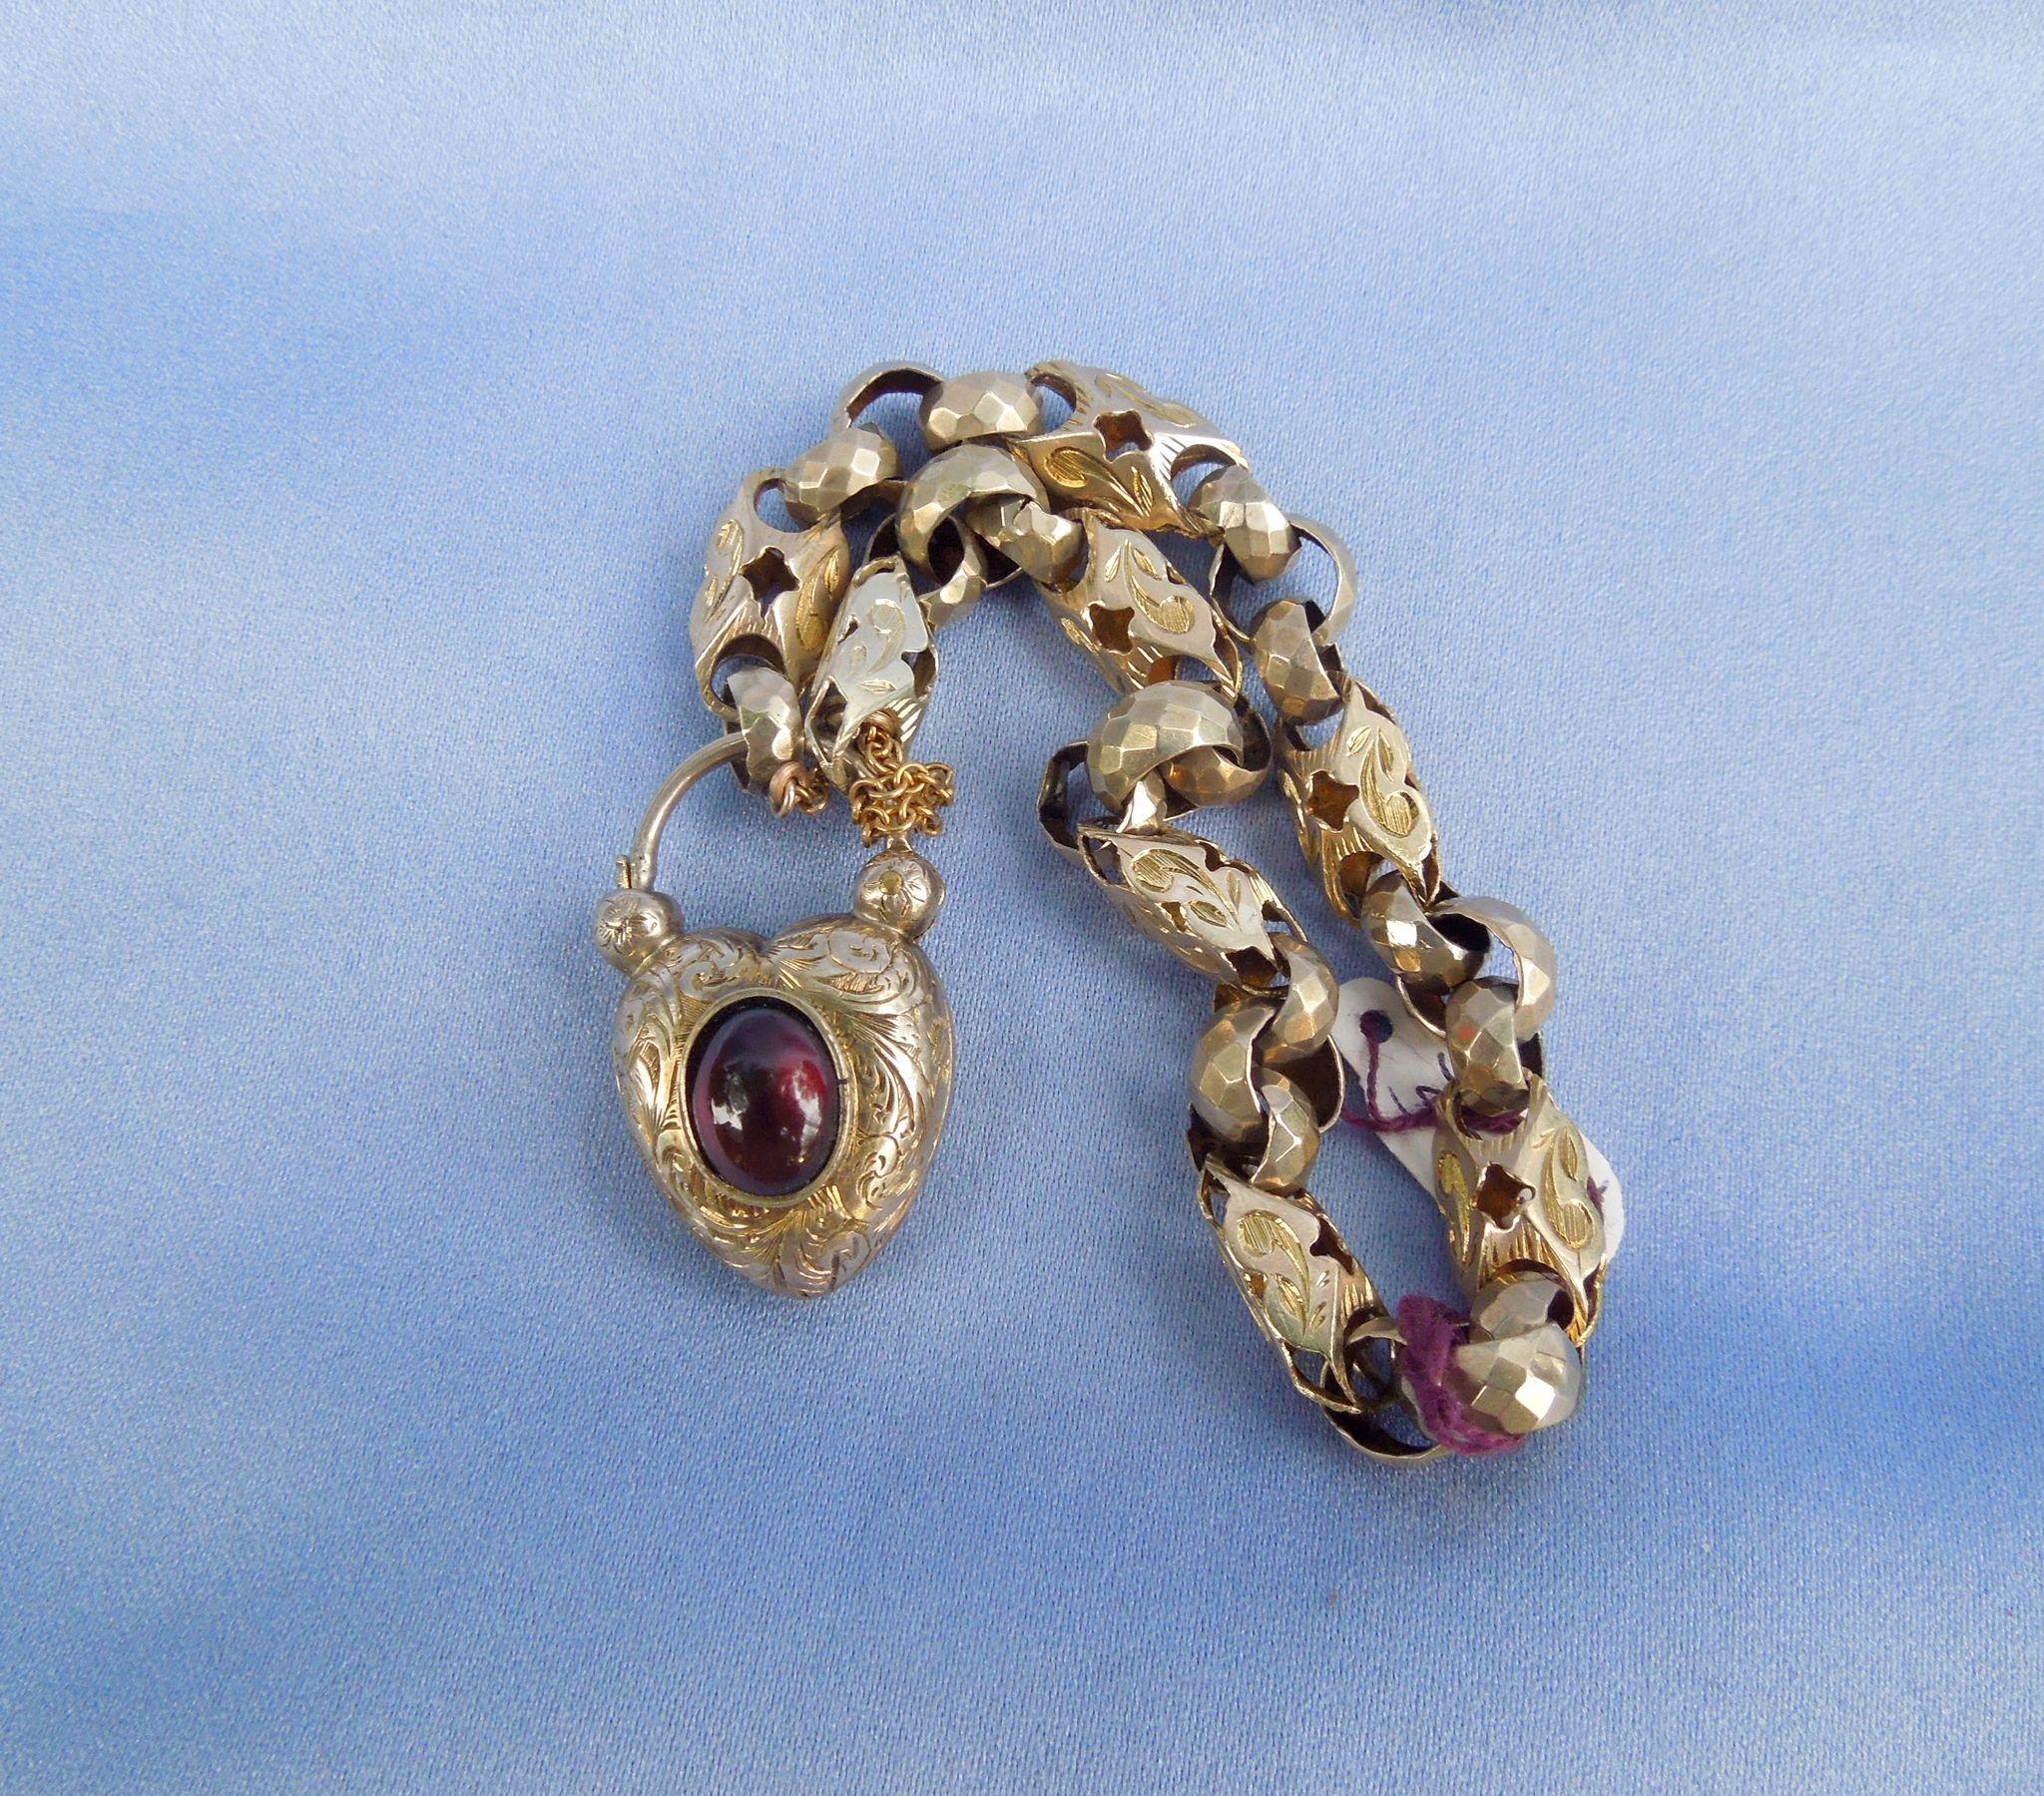 9k Gate Bracelet, Fancy link, With Padlock with Large Garnet